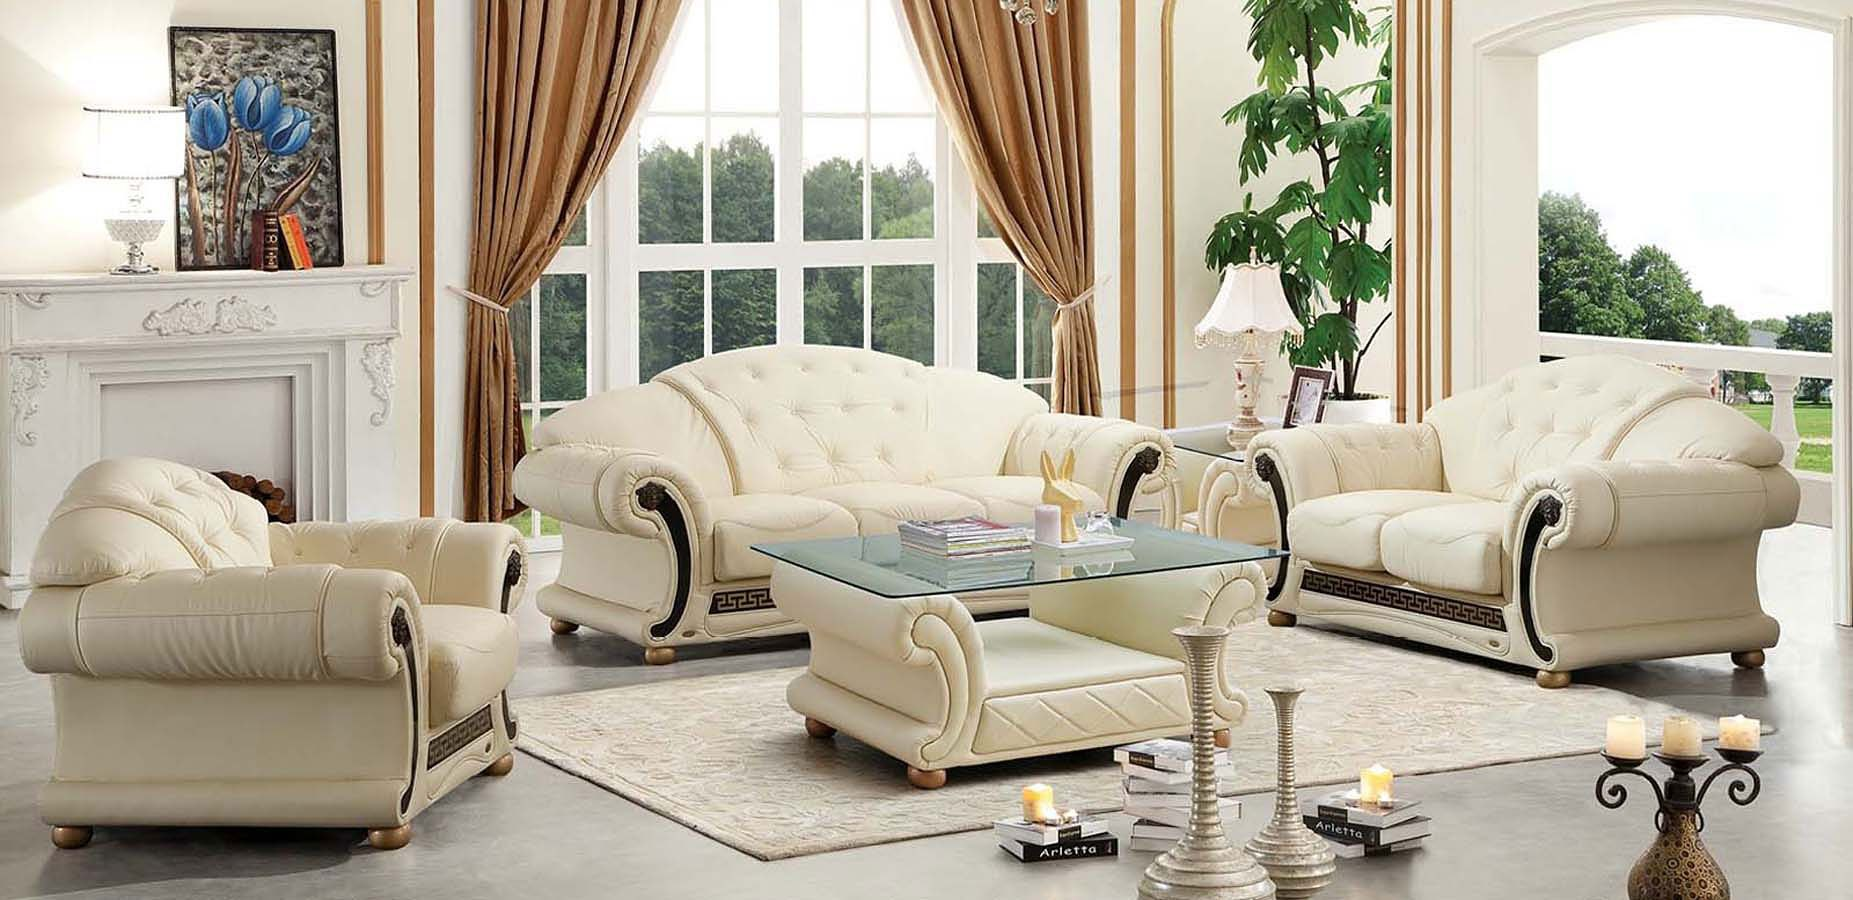 Apolo Living Room Set (Ivory) ESF Furniture